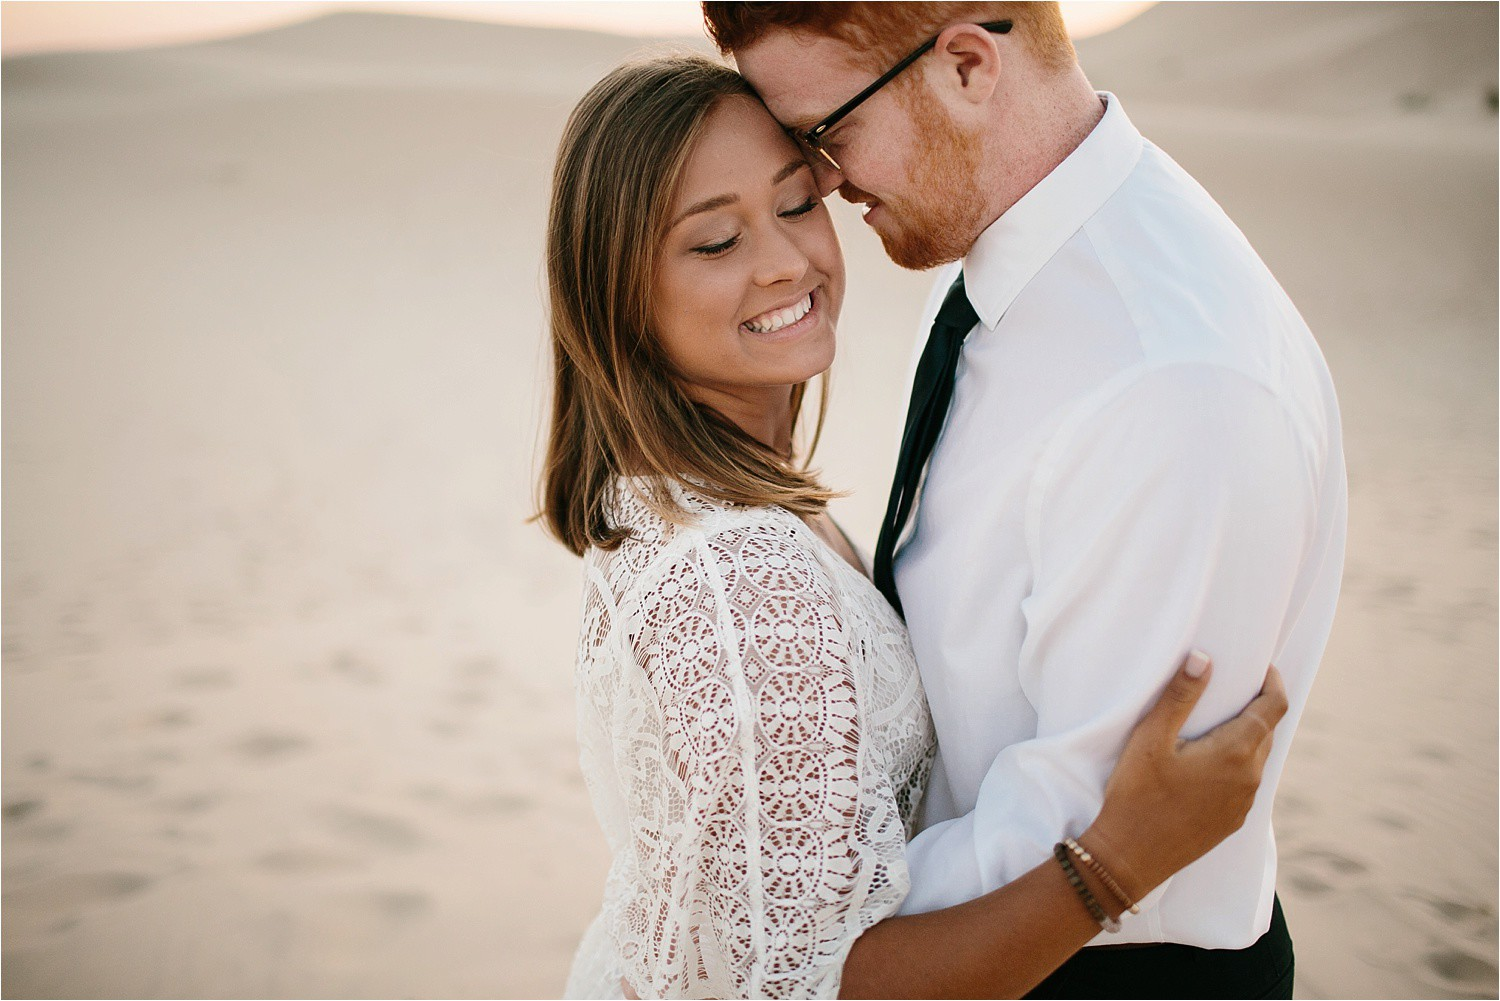 Lauren + Jacob __ a monahans sand dunes engagement session at sunrise by North Texas Wedding Photographer, Rachel Meagan Photography __ 06